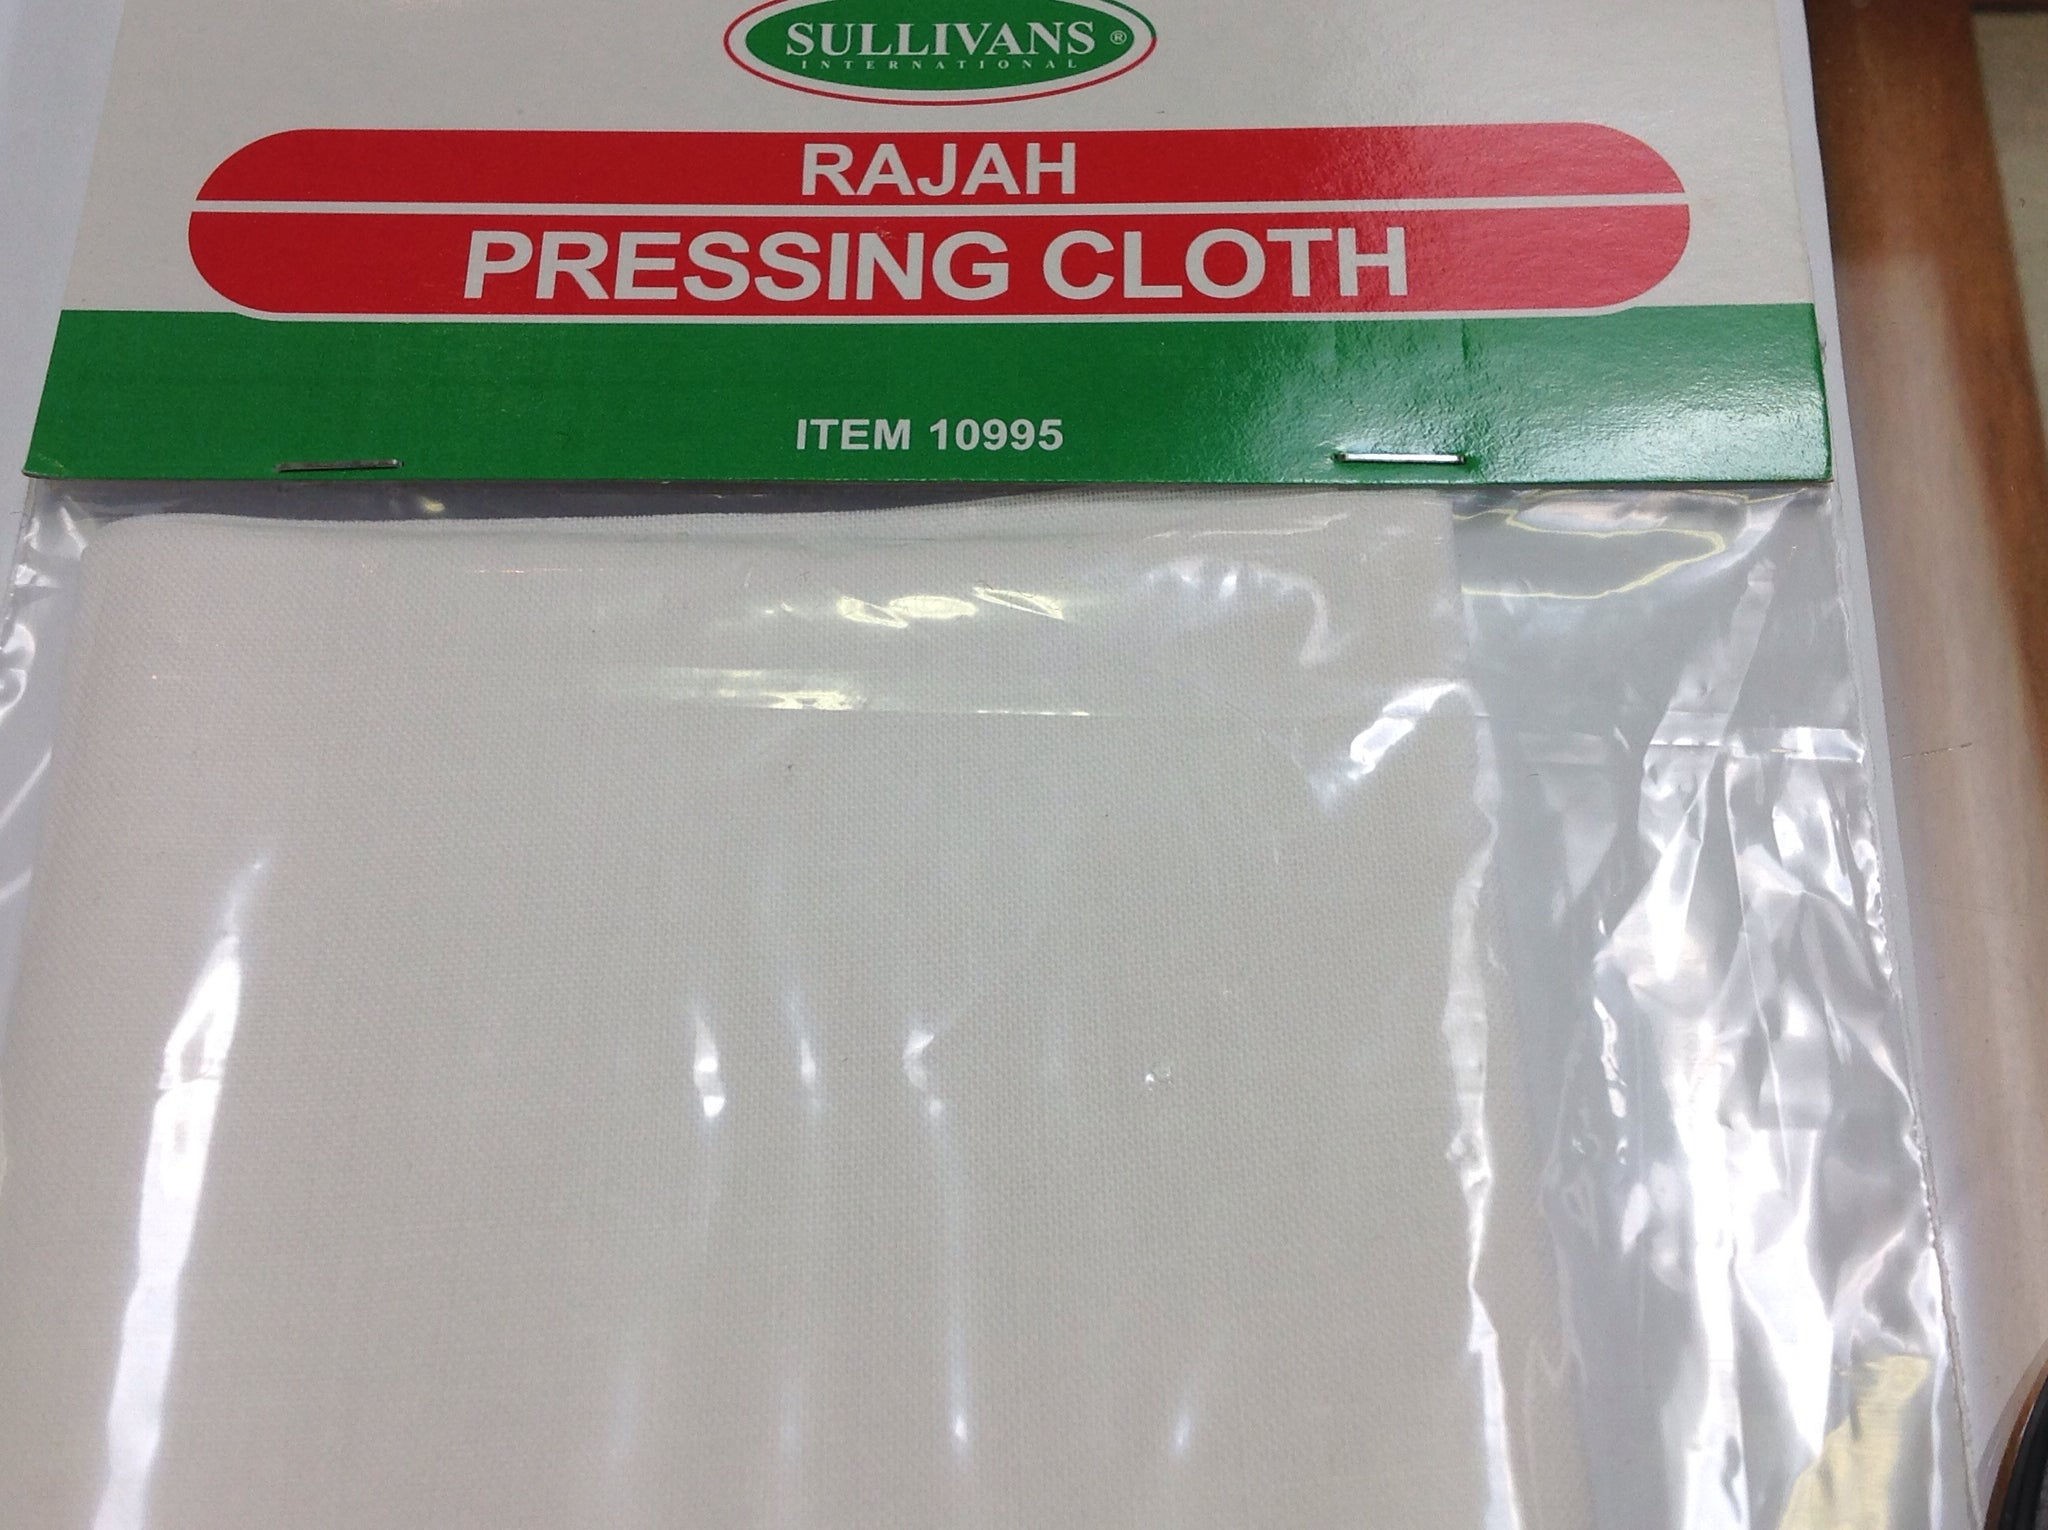 Rajah Pressing Cloth - Sullivans